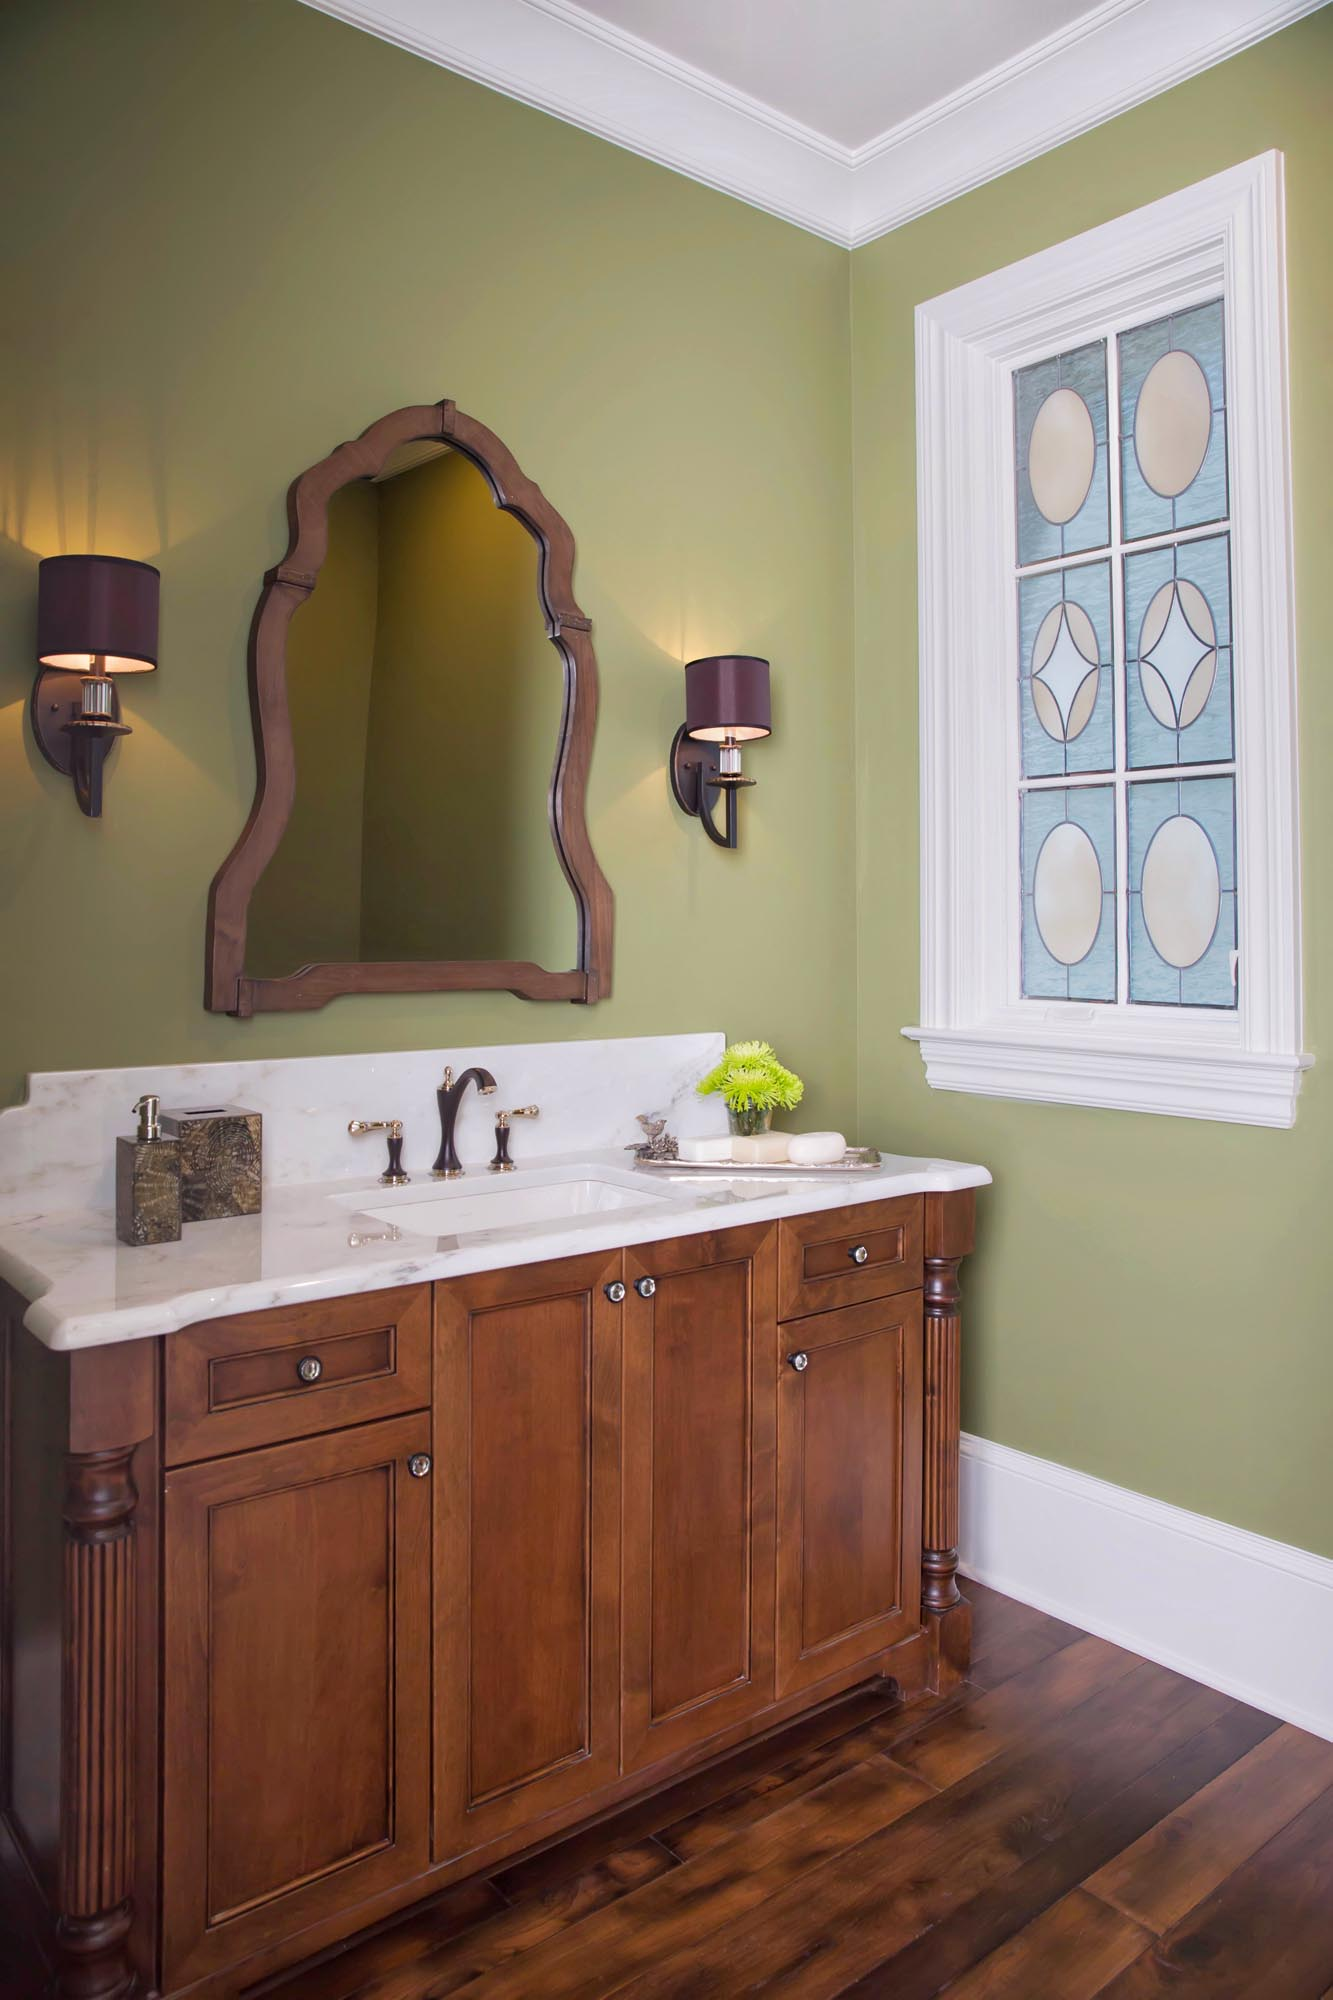 Green walls in powder bath with stained glass window